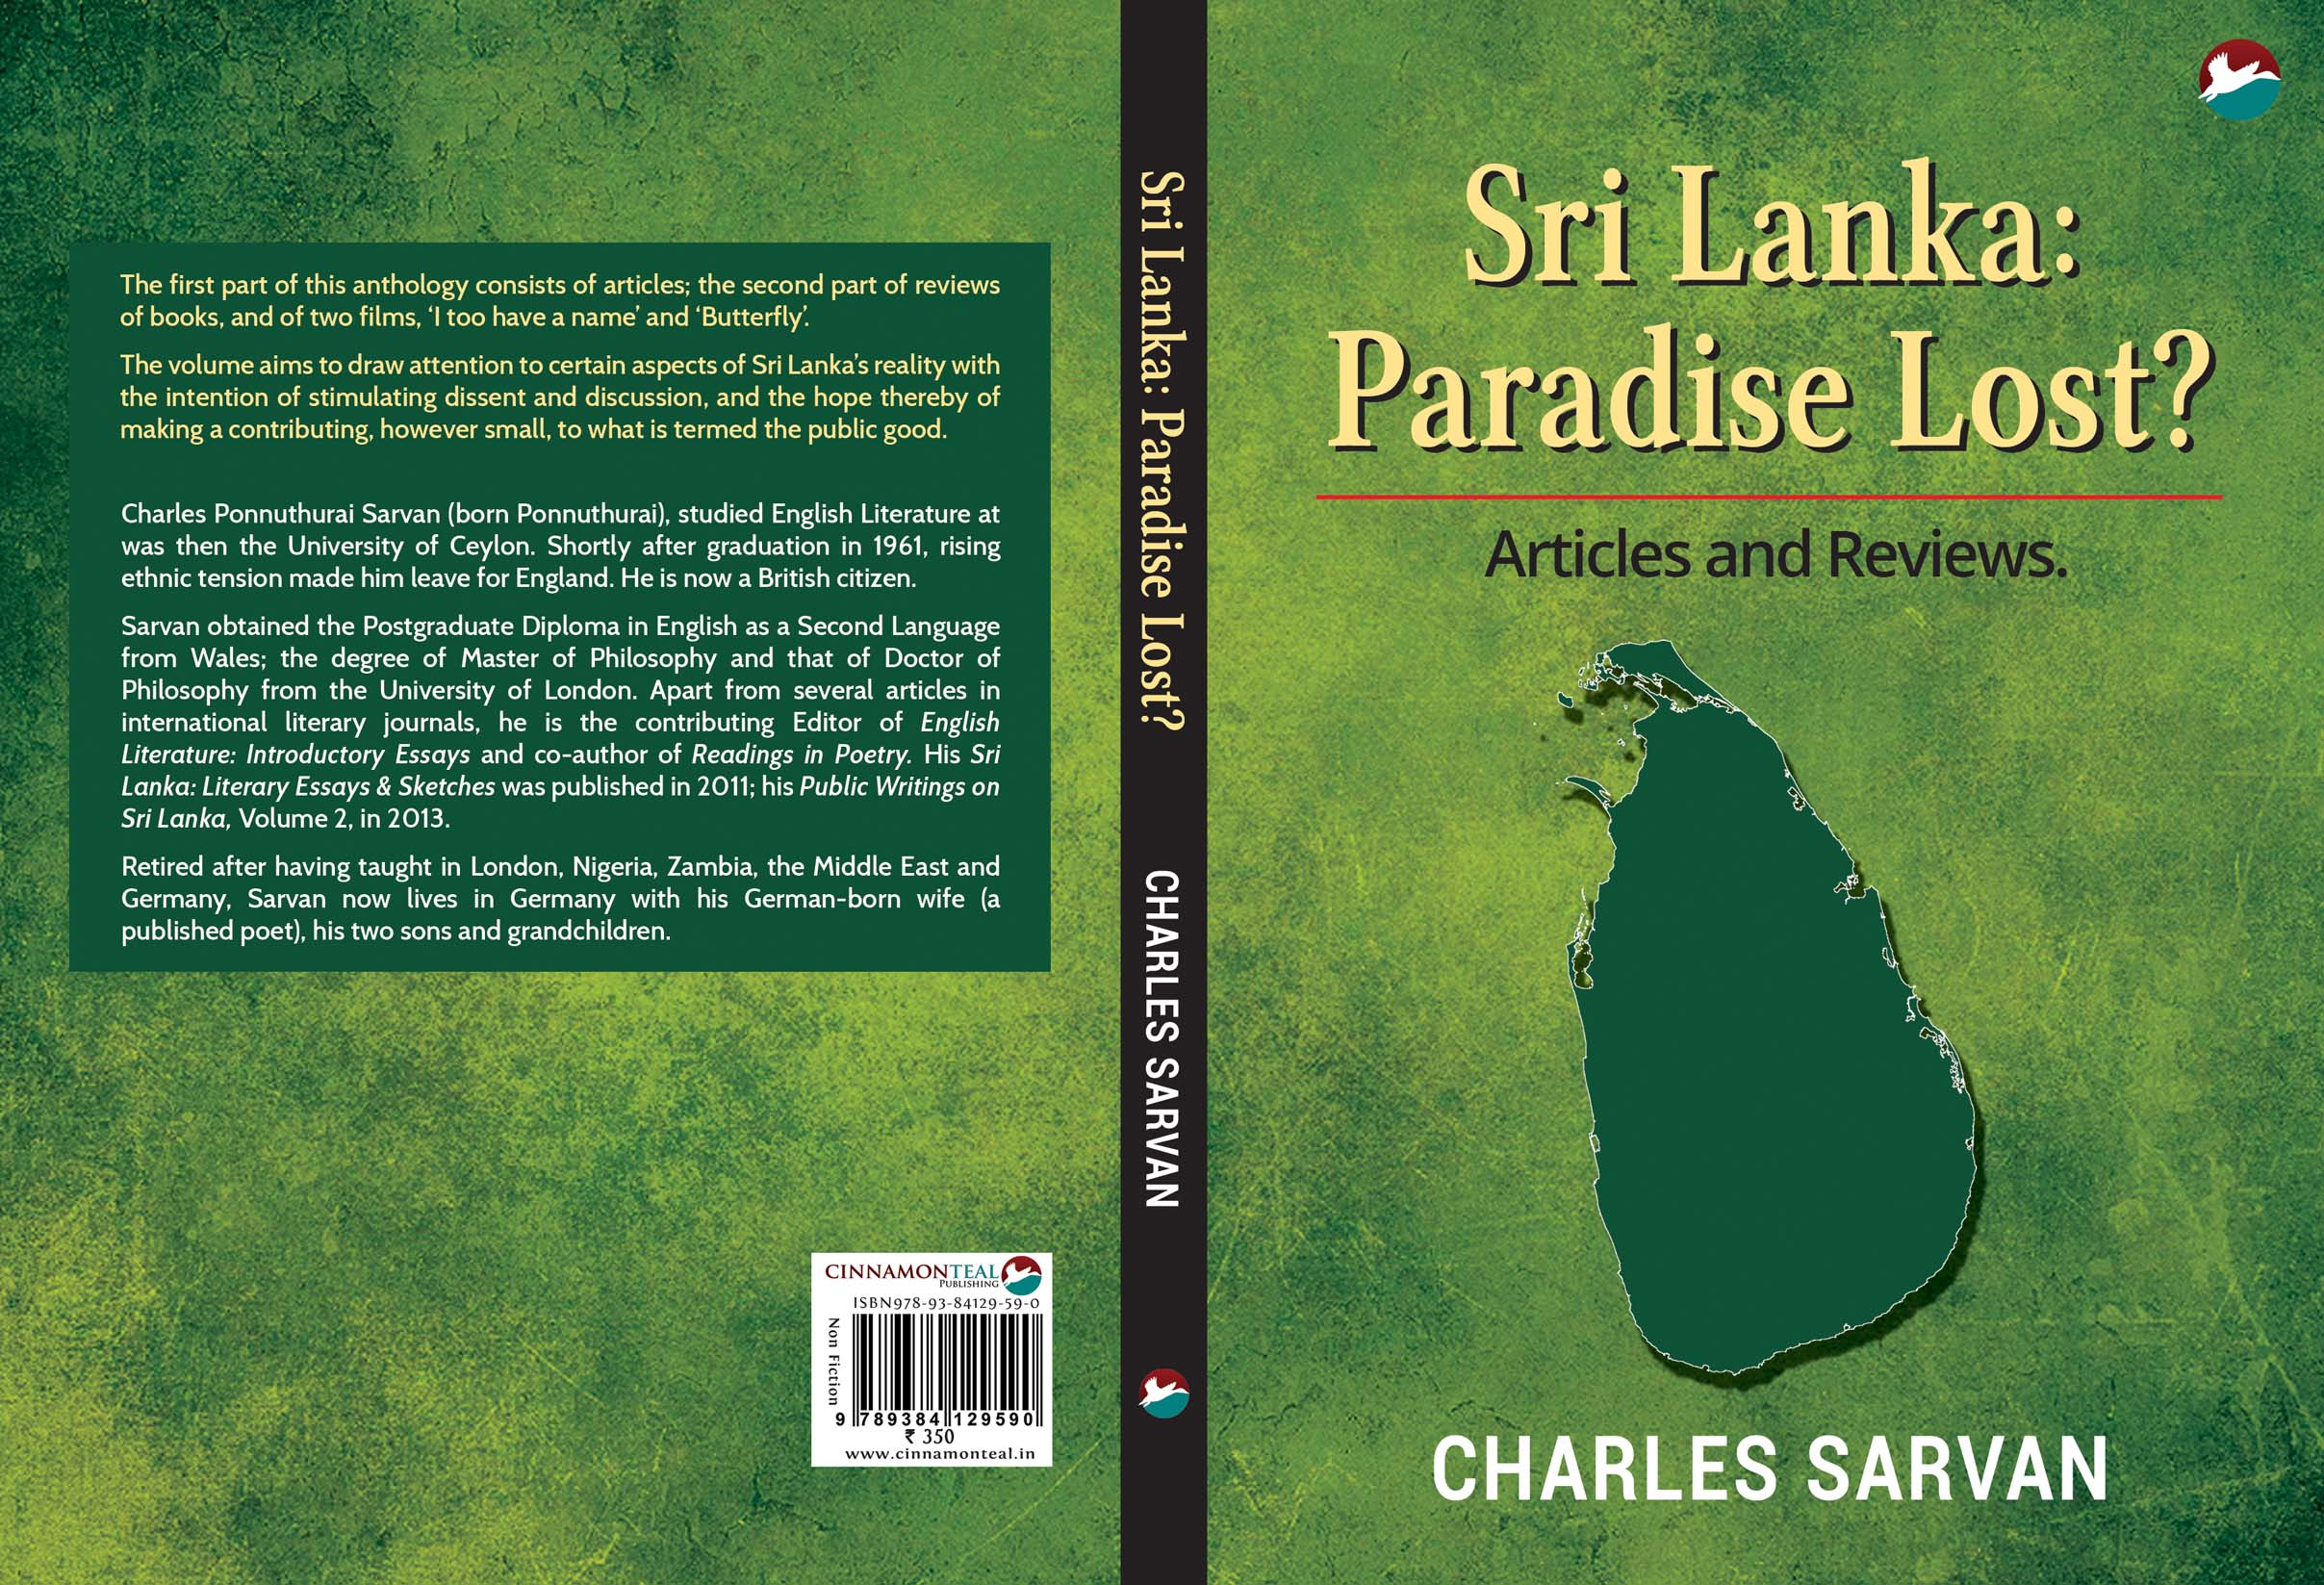 Superbe Charles Sarvanu0027s Essays In Sri Lanka : A Paradise Lost?